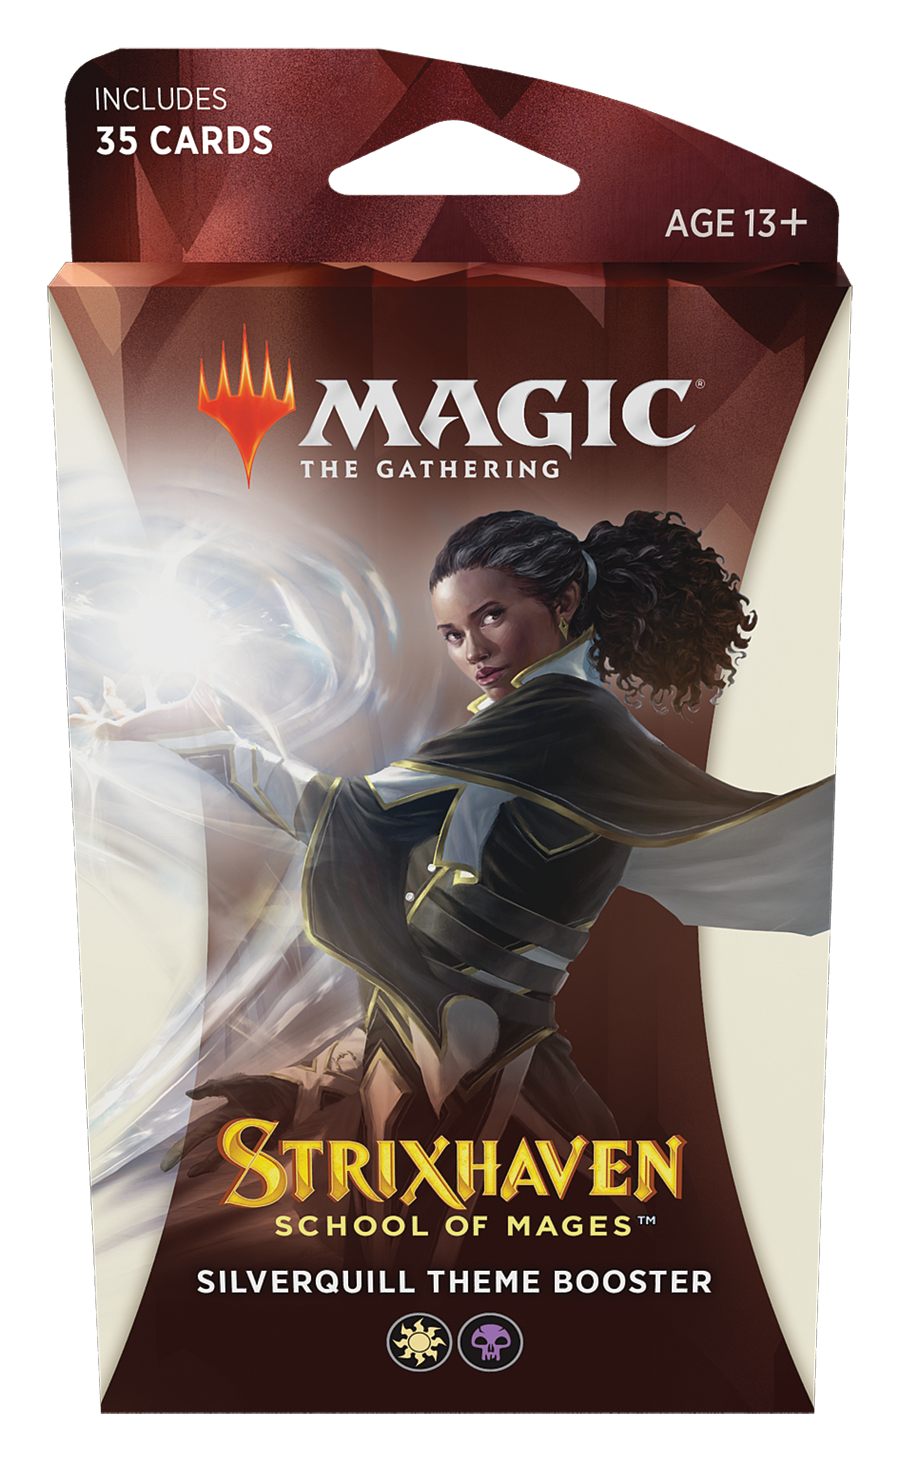 MTG-Strixhaven-Theme-Booster-Silverquill